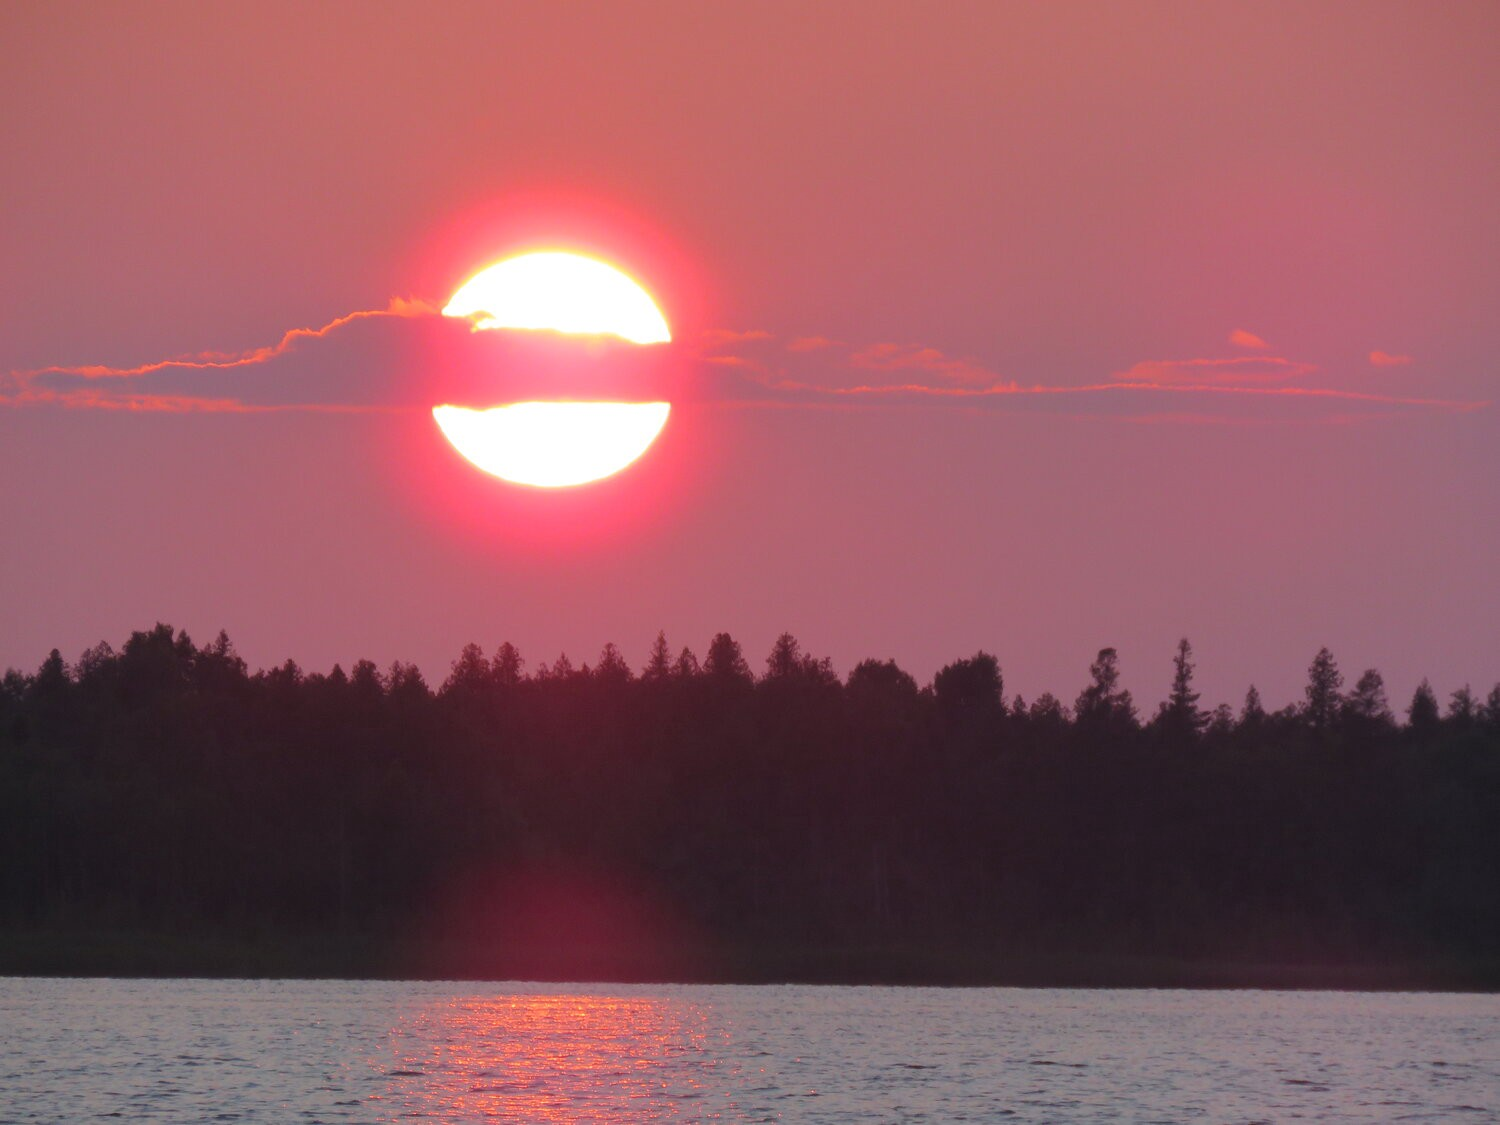 Red sunset over lake and trees